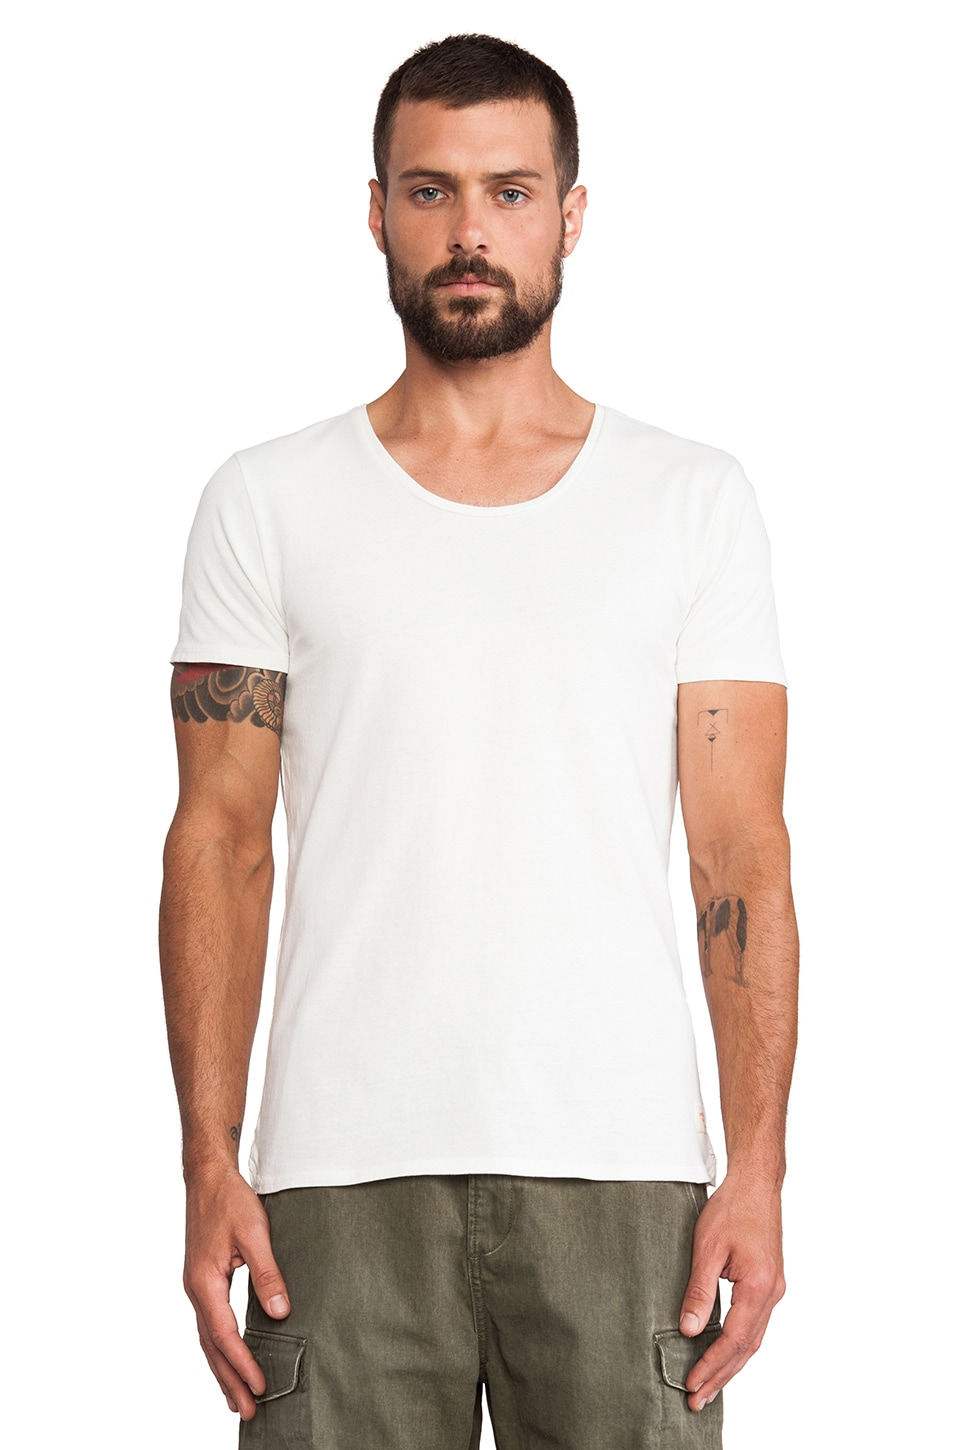 Scotch & Soda Home Alone Crew Neck Tee in White